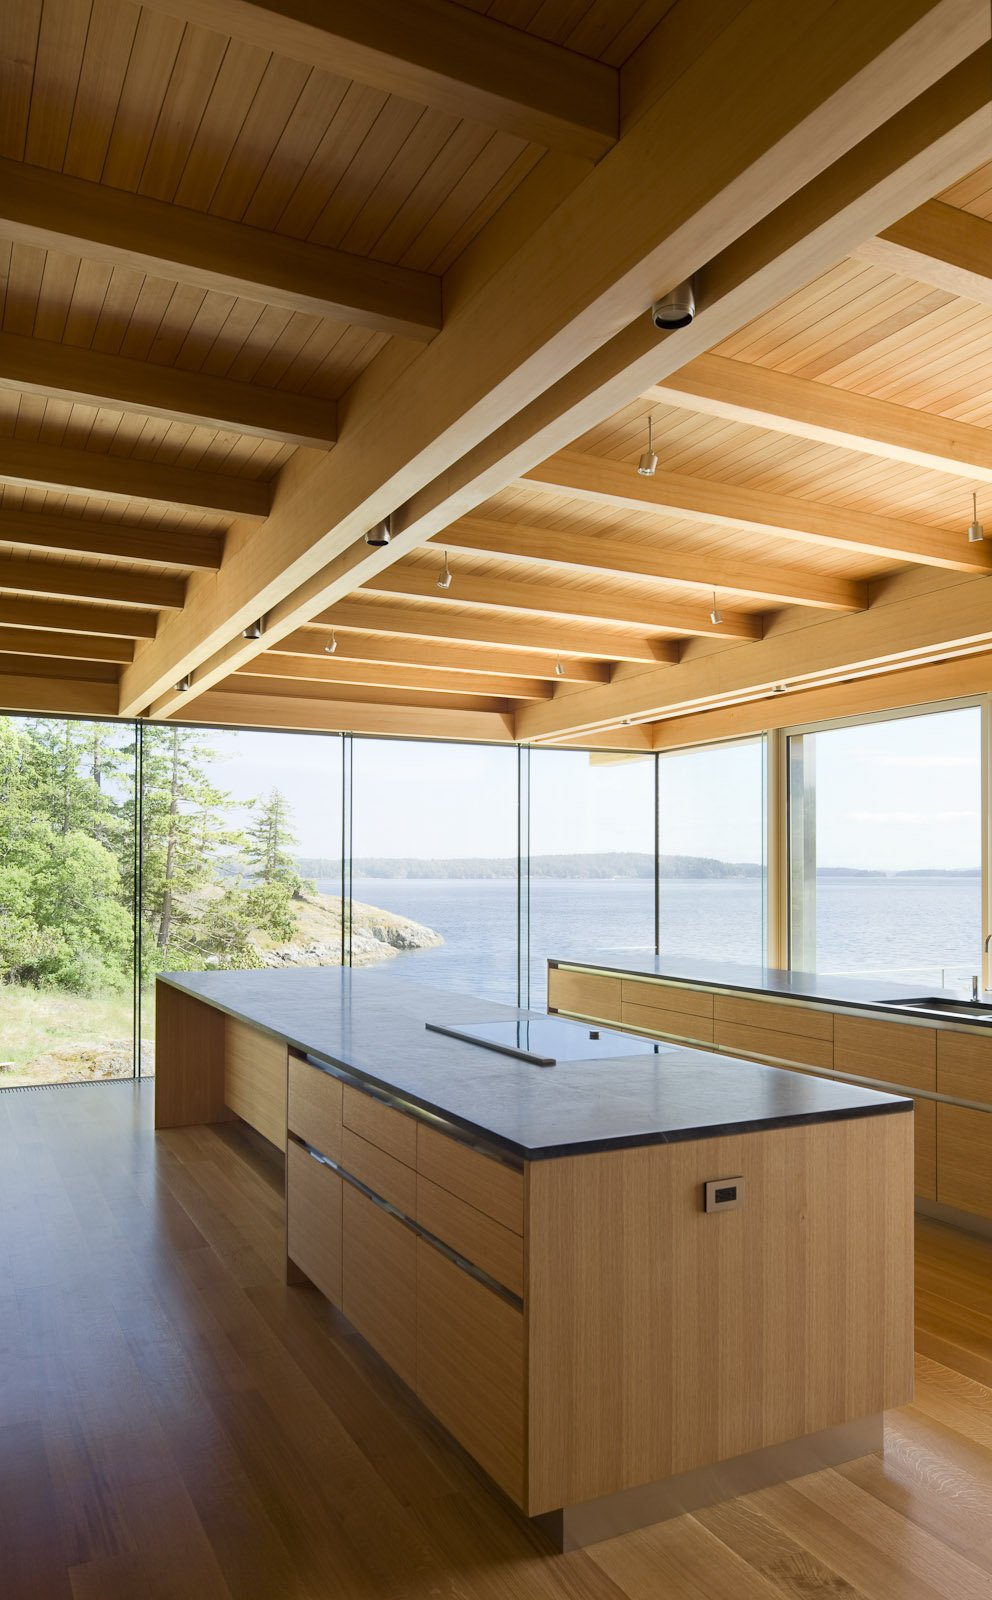 Kitchen Island, Ocean Views, Oceanfront Home in British Columbia, Canada